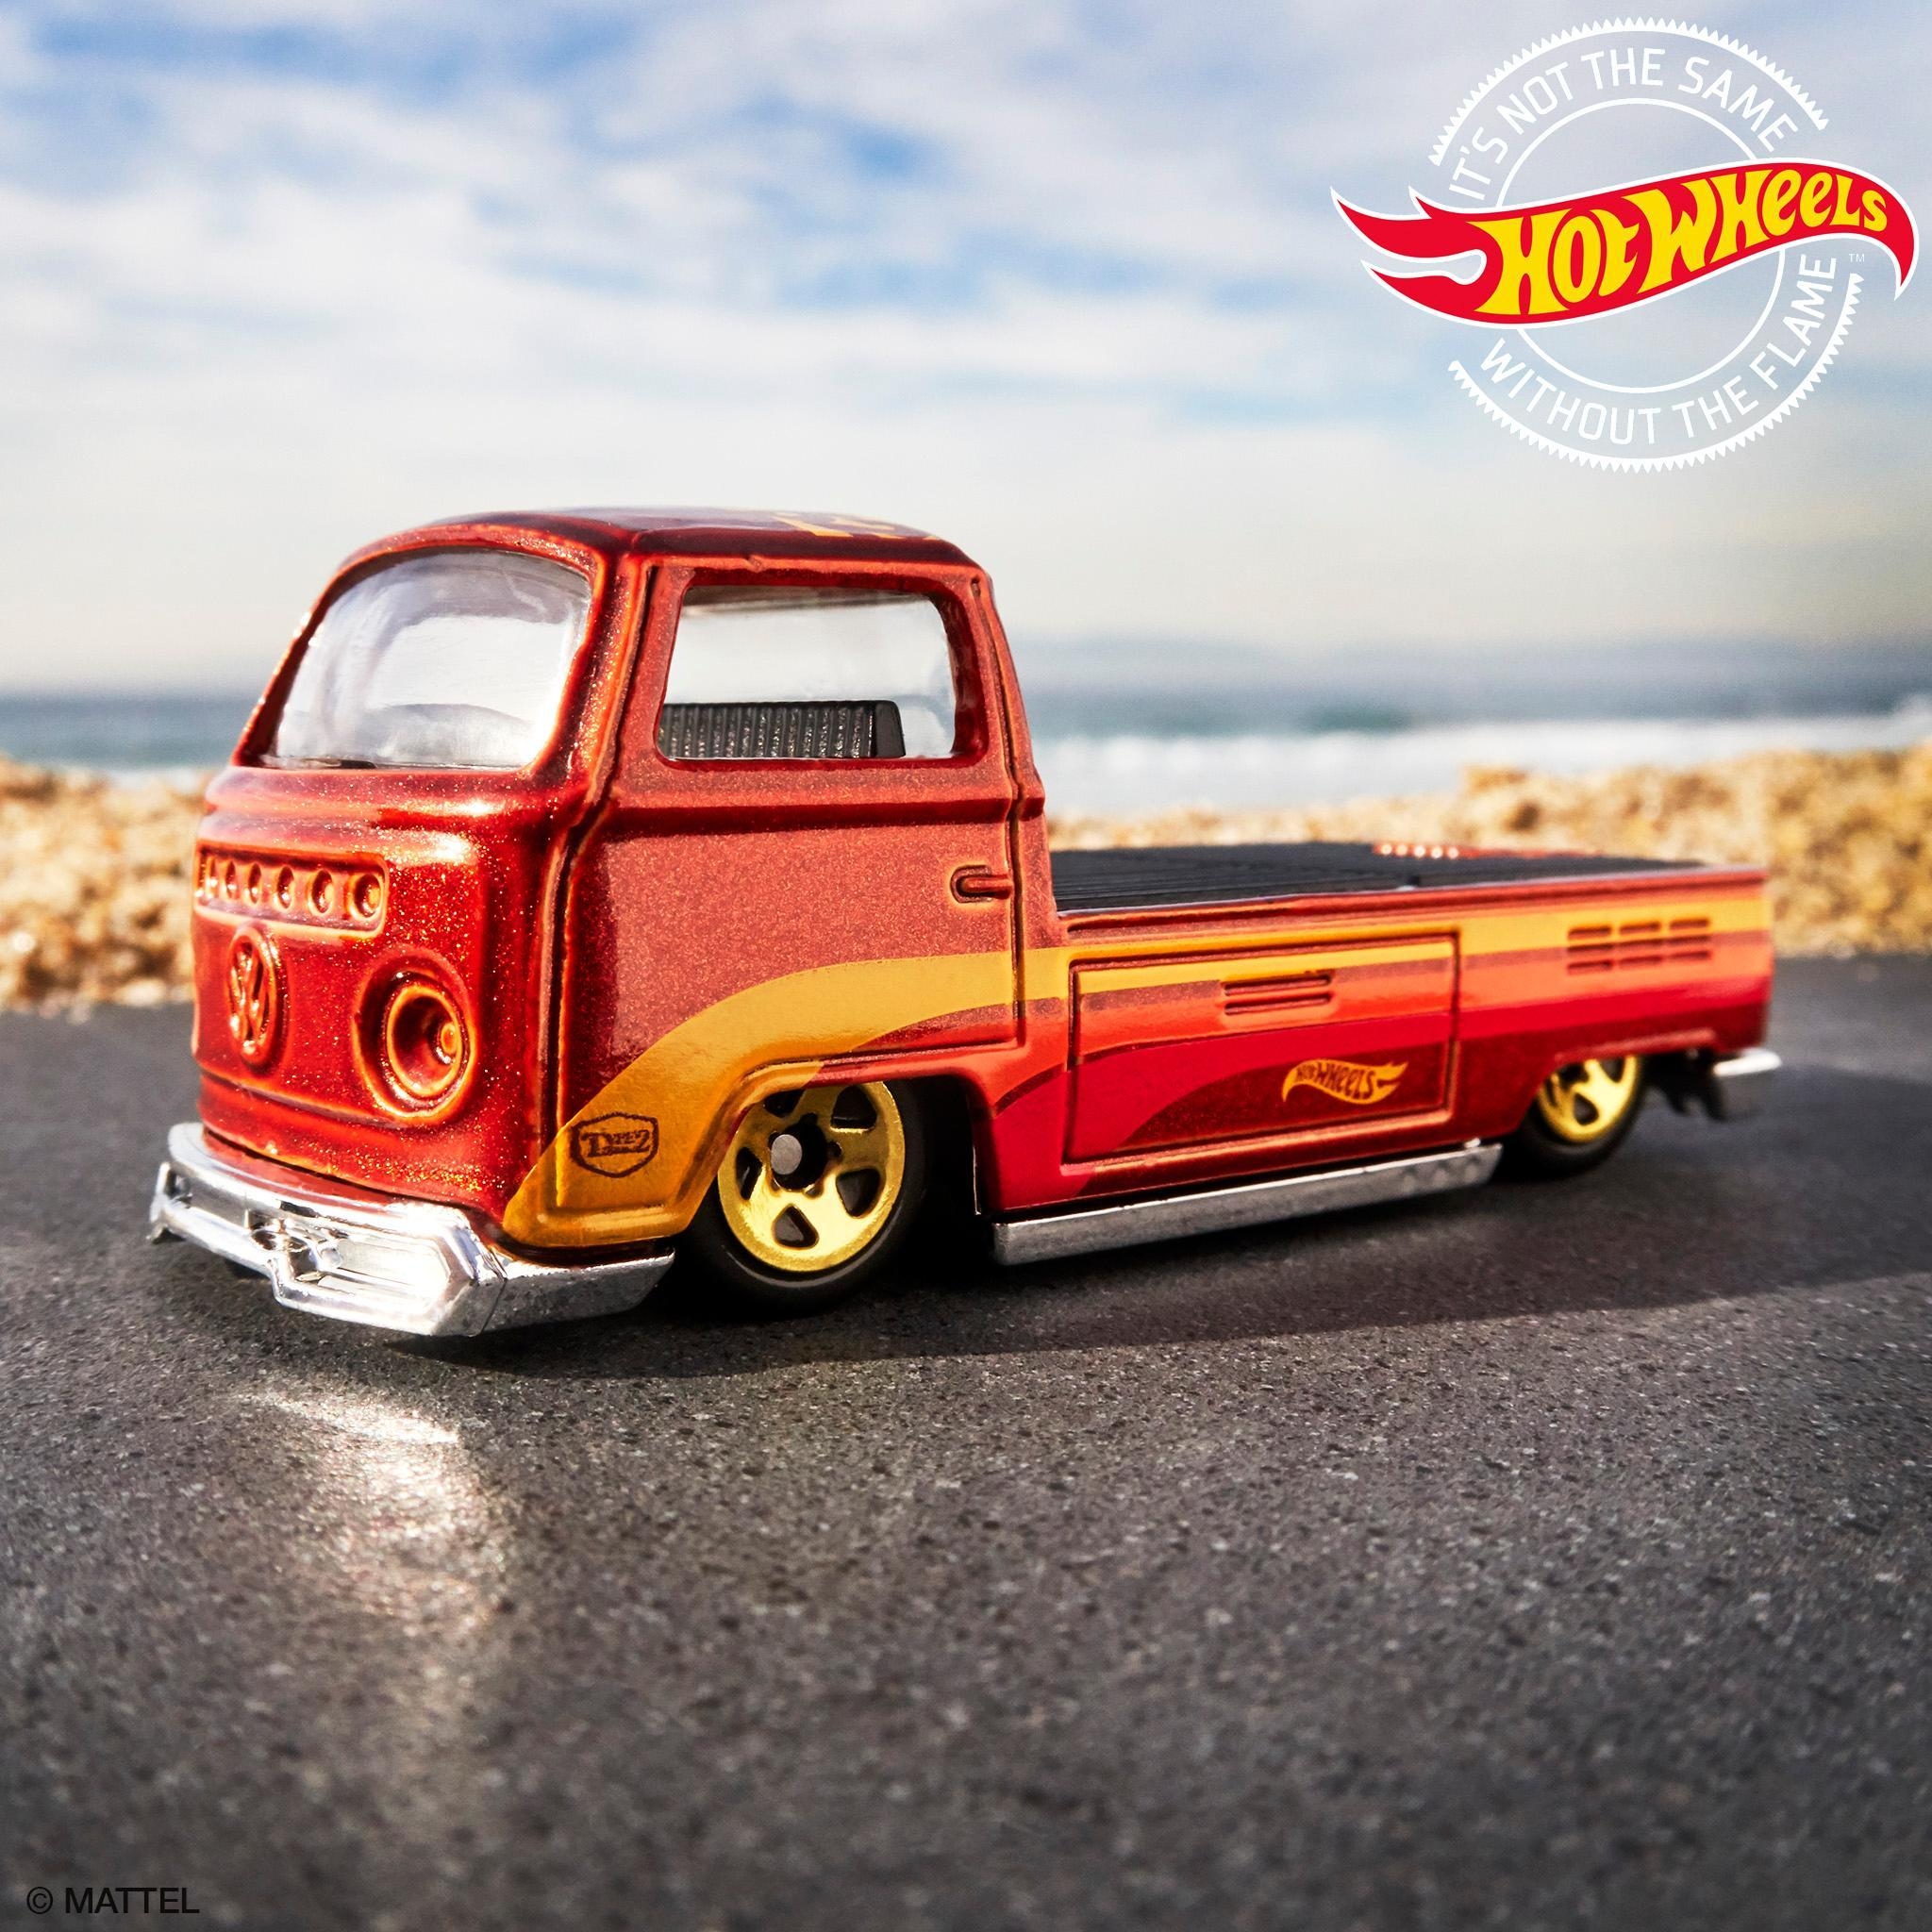 You need a couple of views of the fifteen52 and @Type2Detectives Volkswagen T2 Pickup. 👌 #HotWheels #Fifteen52 #Volkswagen https://t.co/jg07ZQQjHV